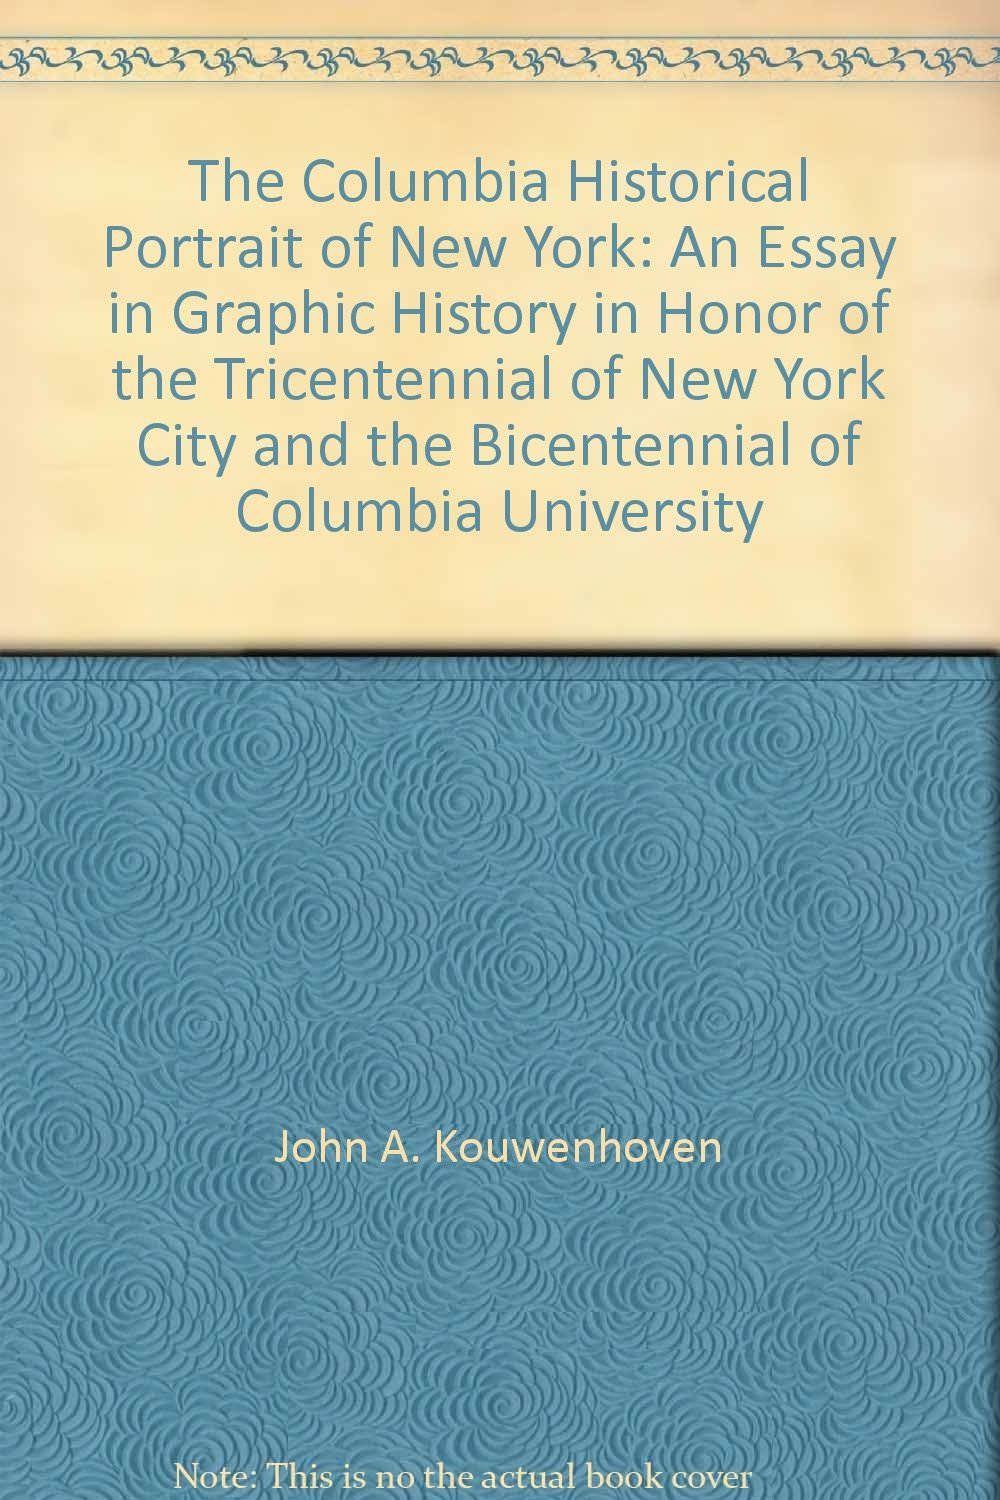 The Columbia Historical Portrait of New York: An Essay in Graphic History in Honor of the Tricentennial of New York City and the Bicentennial of Columbia University